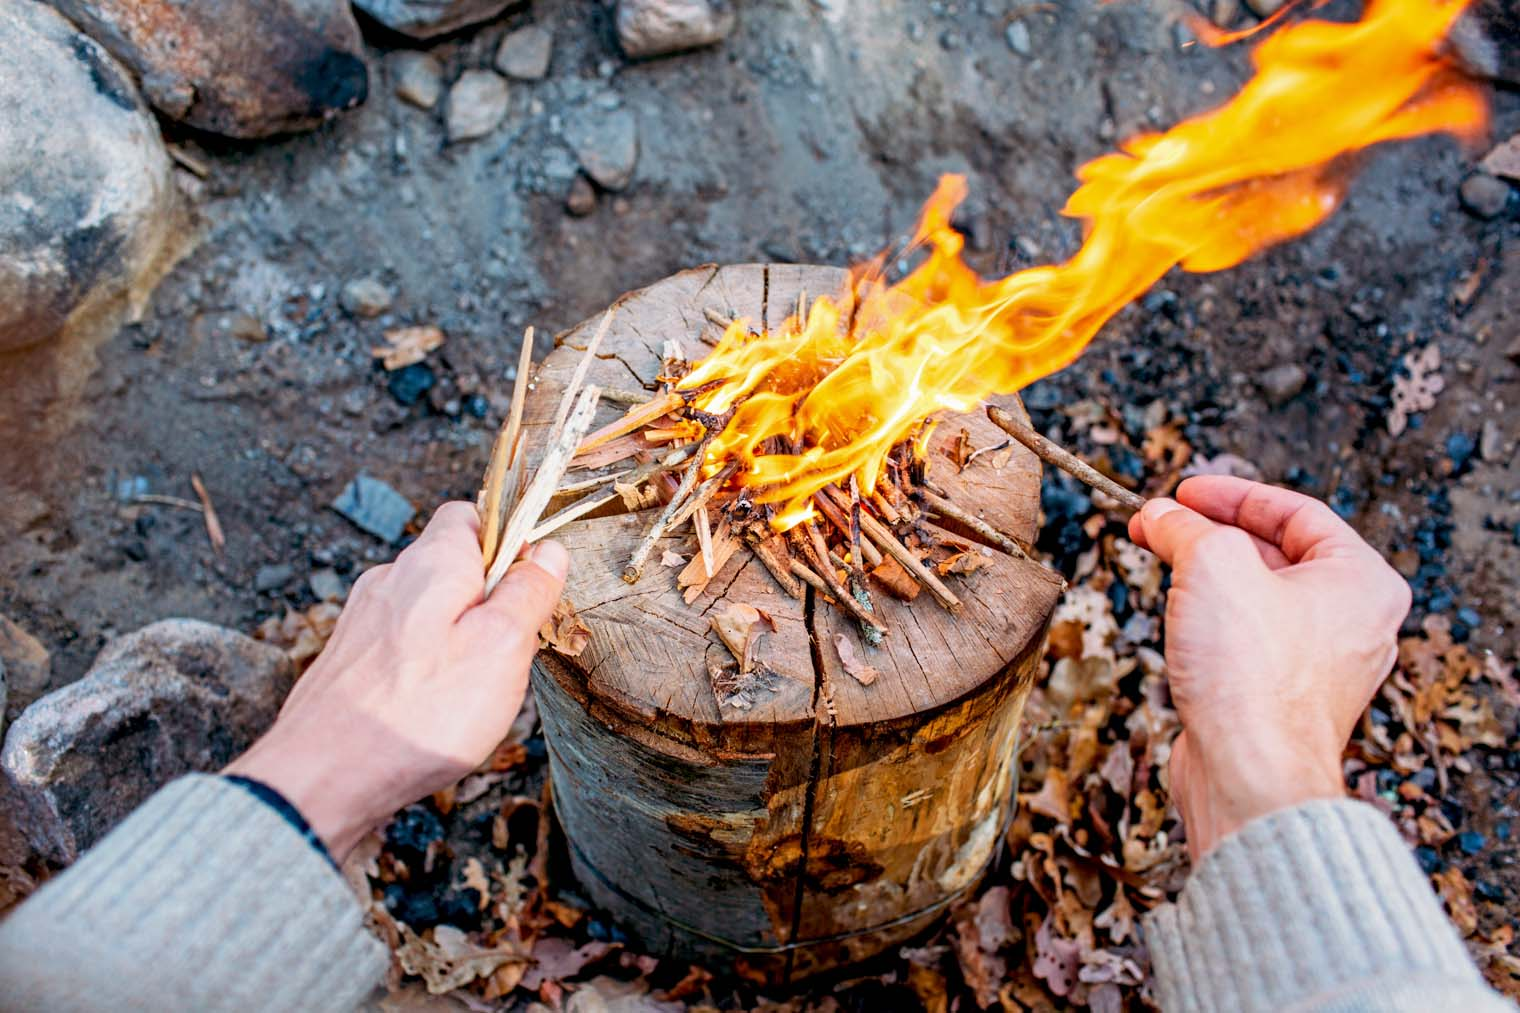 hight resolution of make a stove out of a single log learn to make a swedish torch with